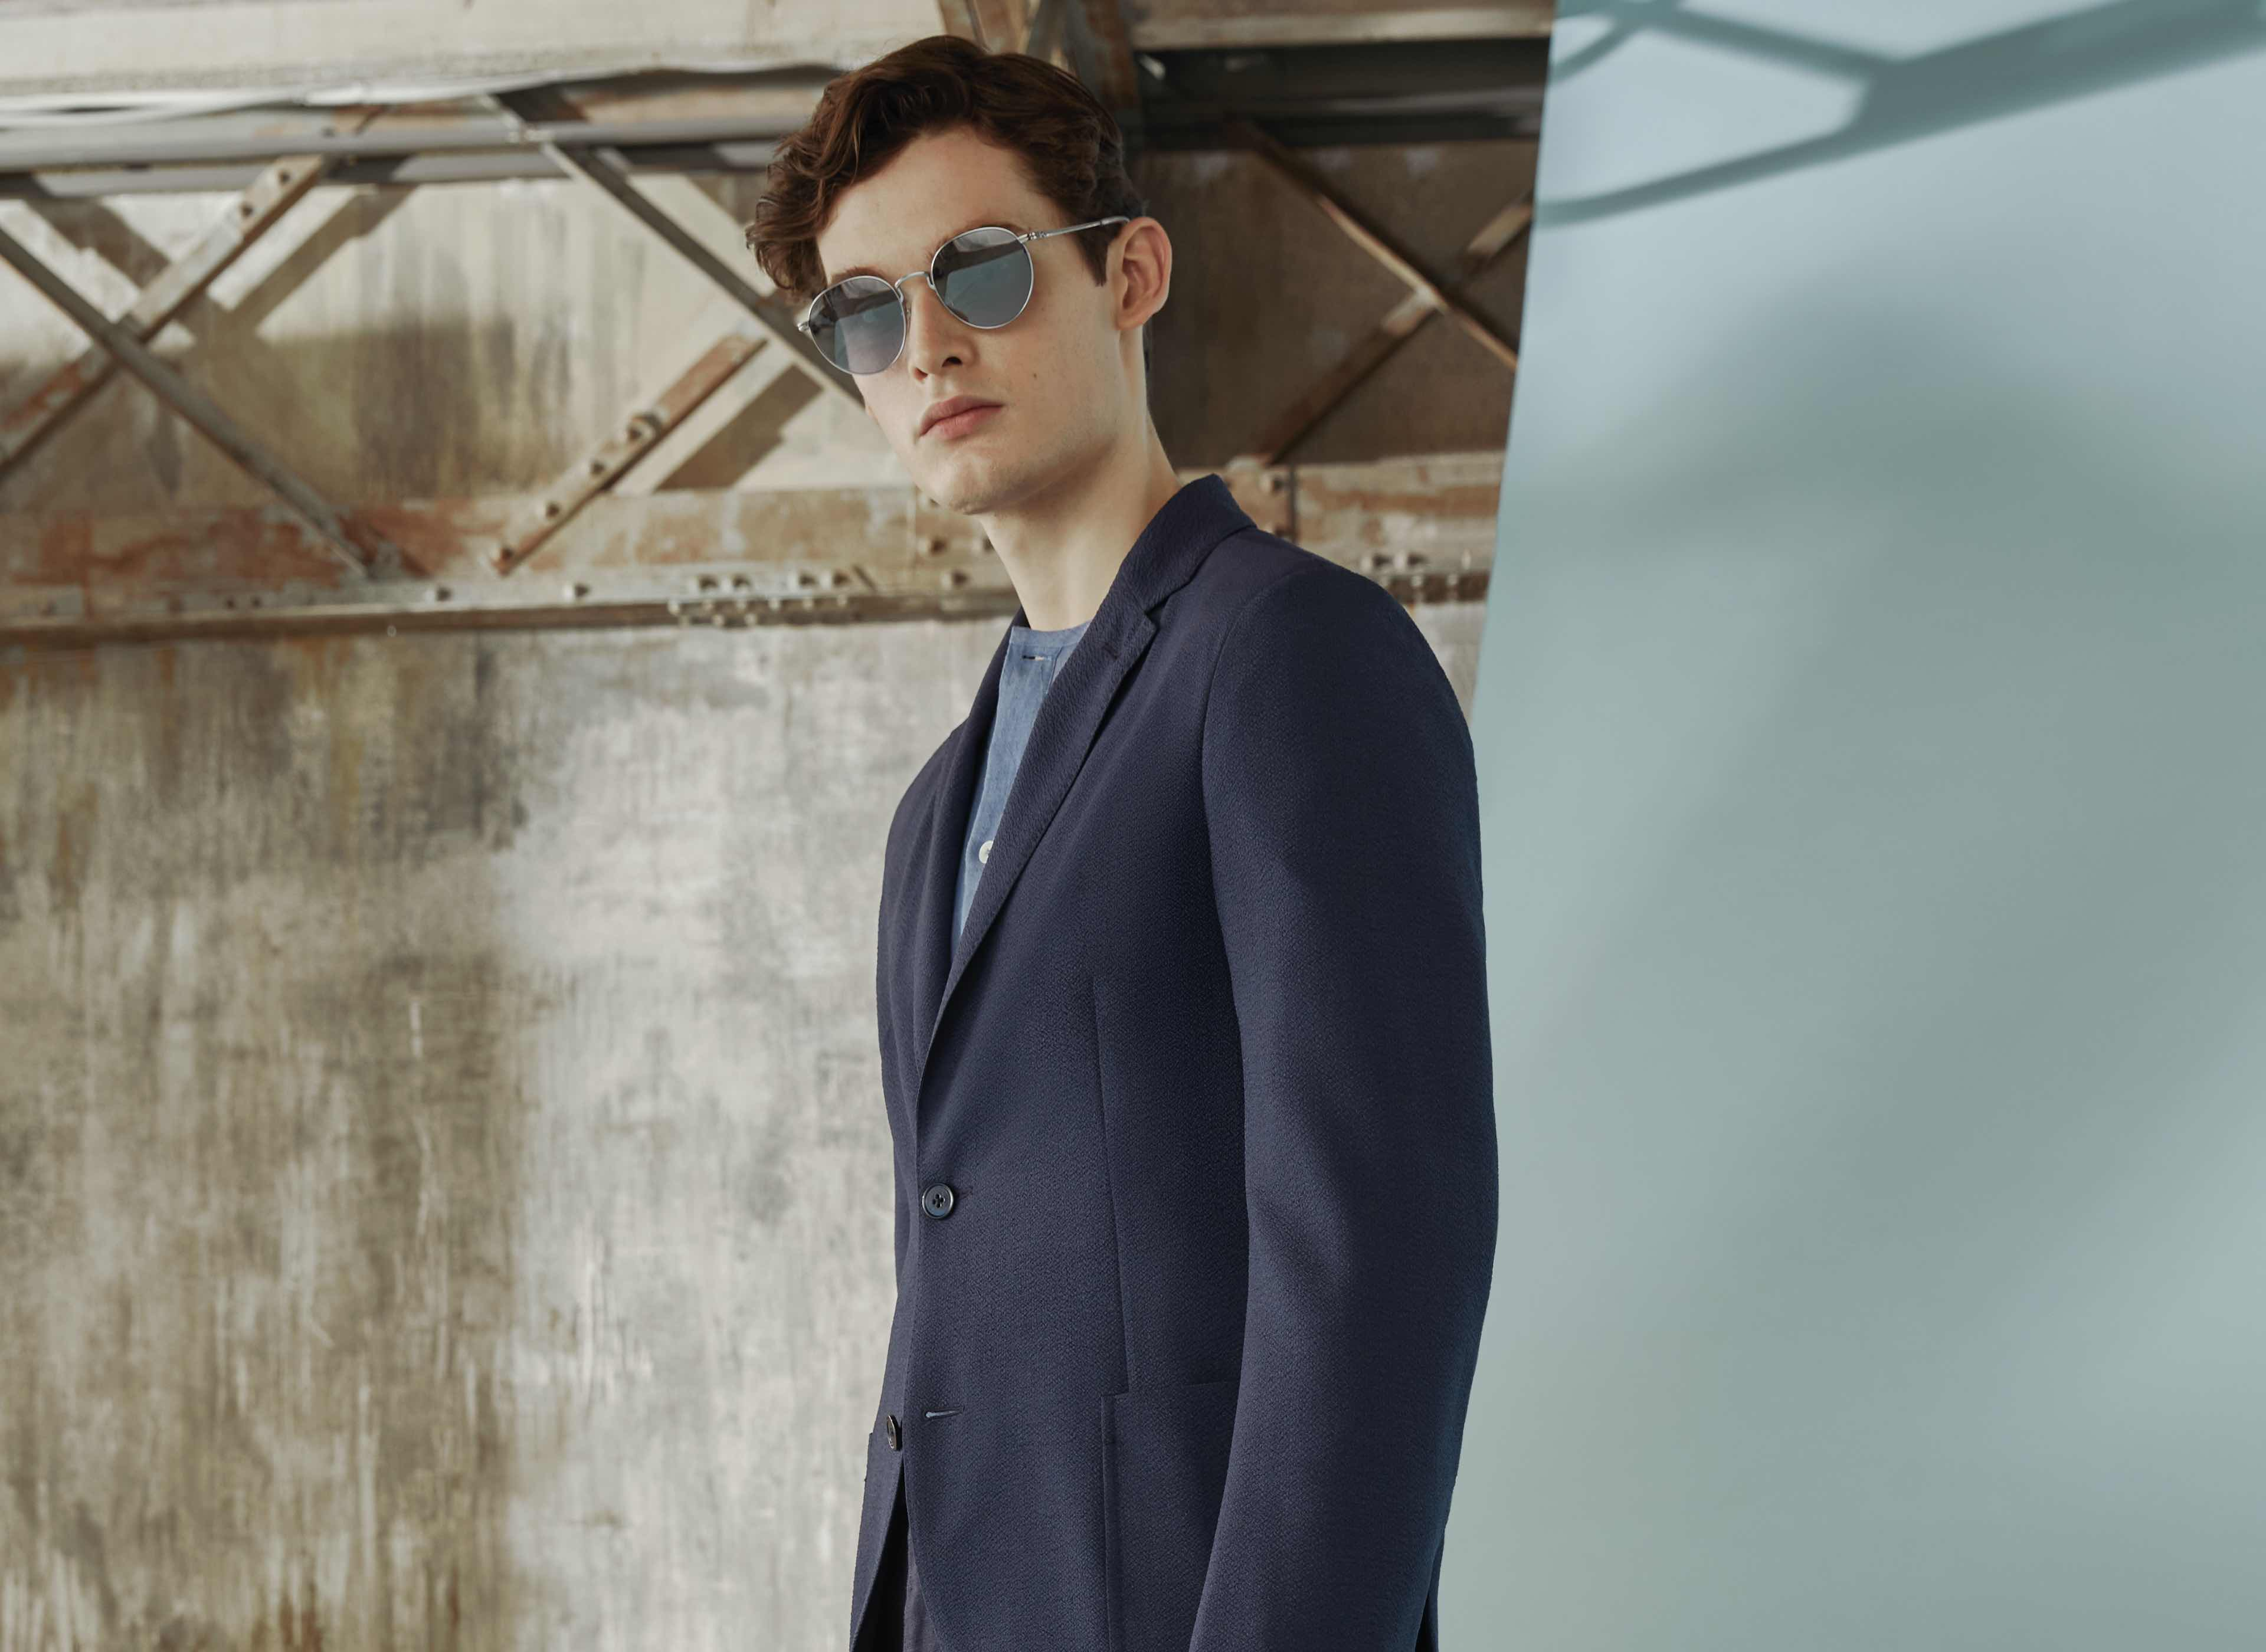 Comfortable seersucker jackets for warm weather outfit | Zegna